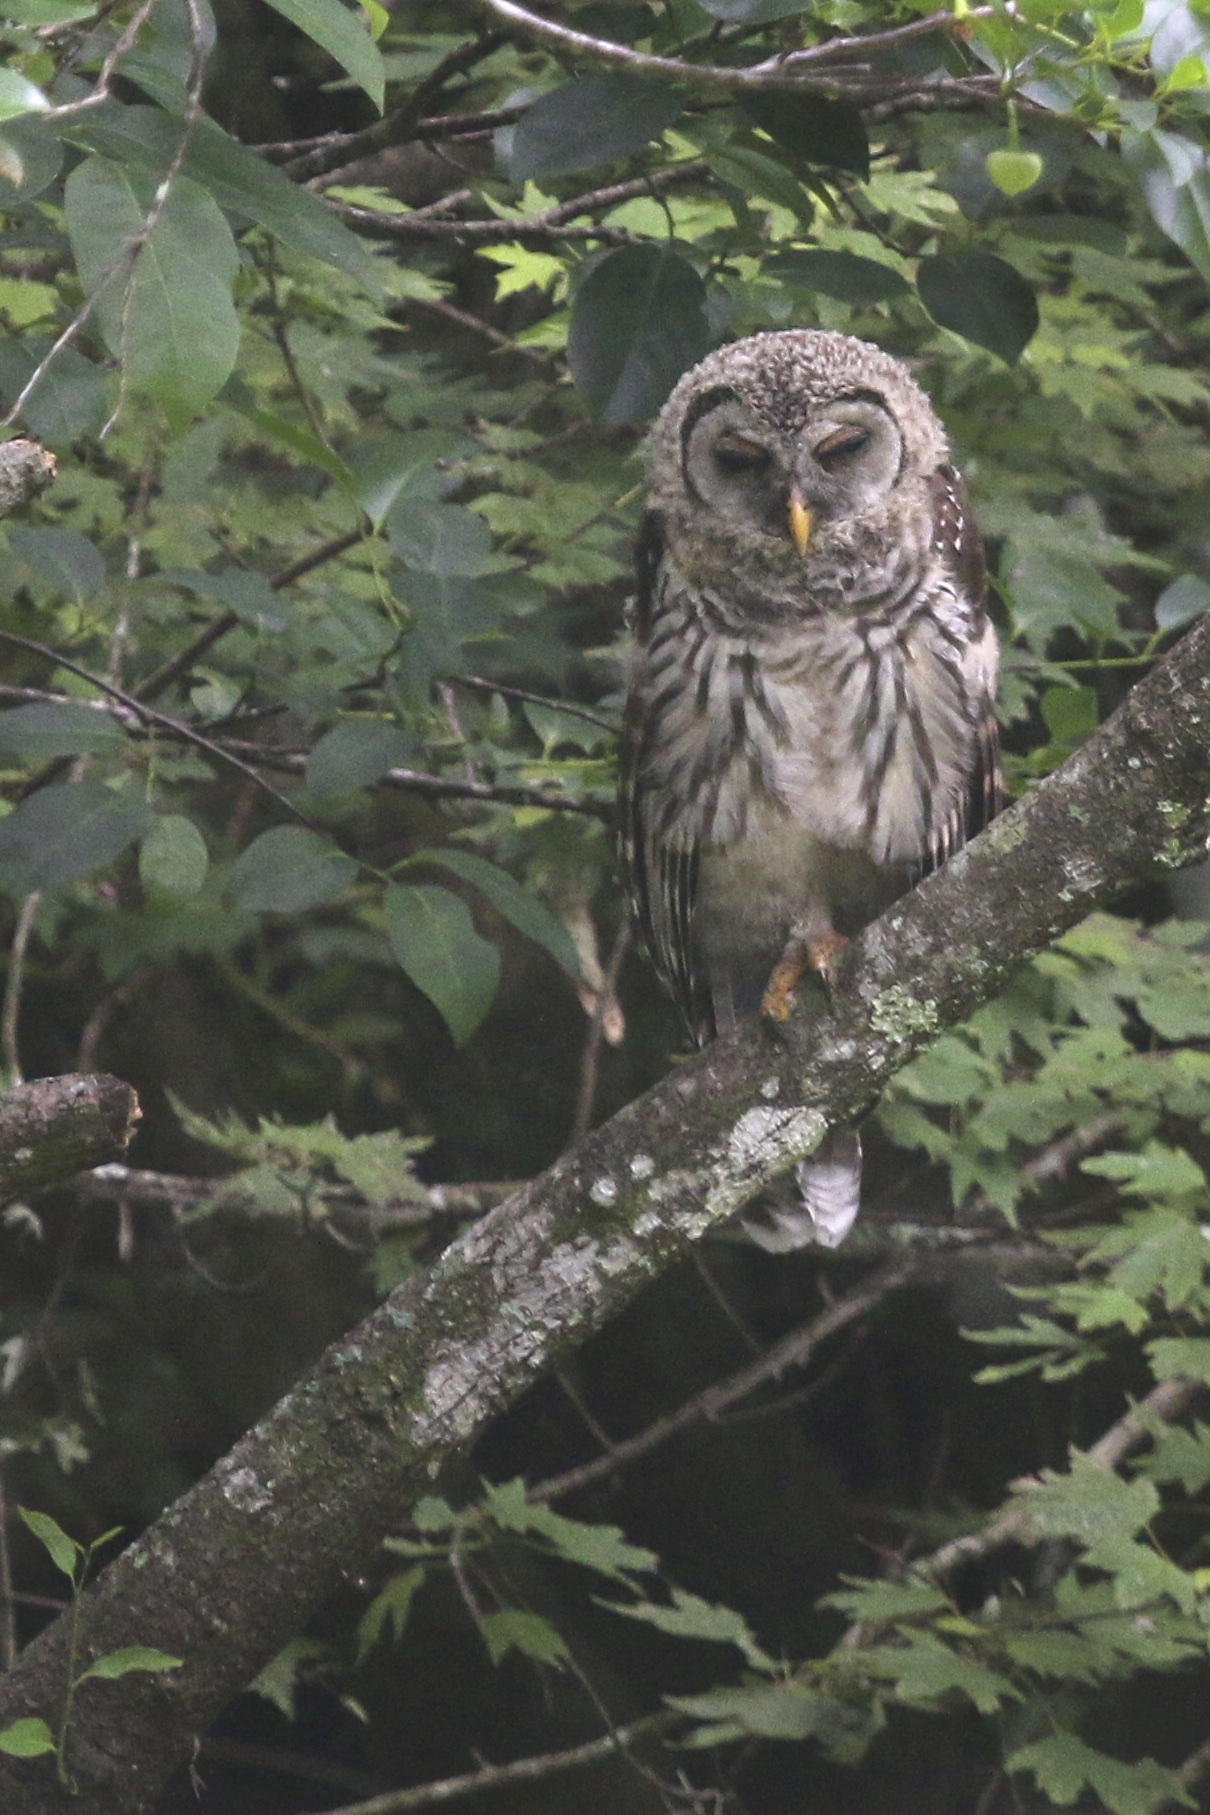 ~A young Barred Owl at Corkscrew Swamp Sanctuary, 5/5/15.~